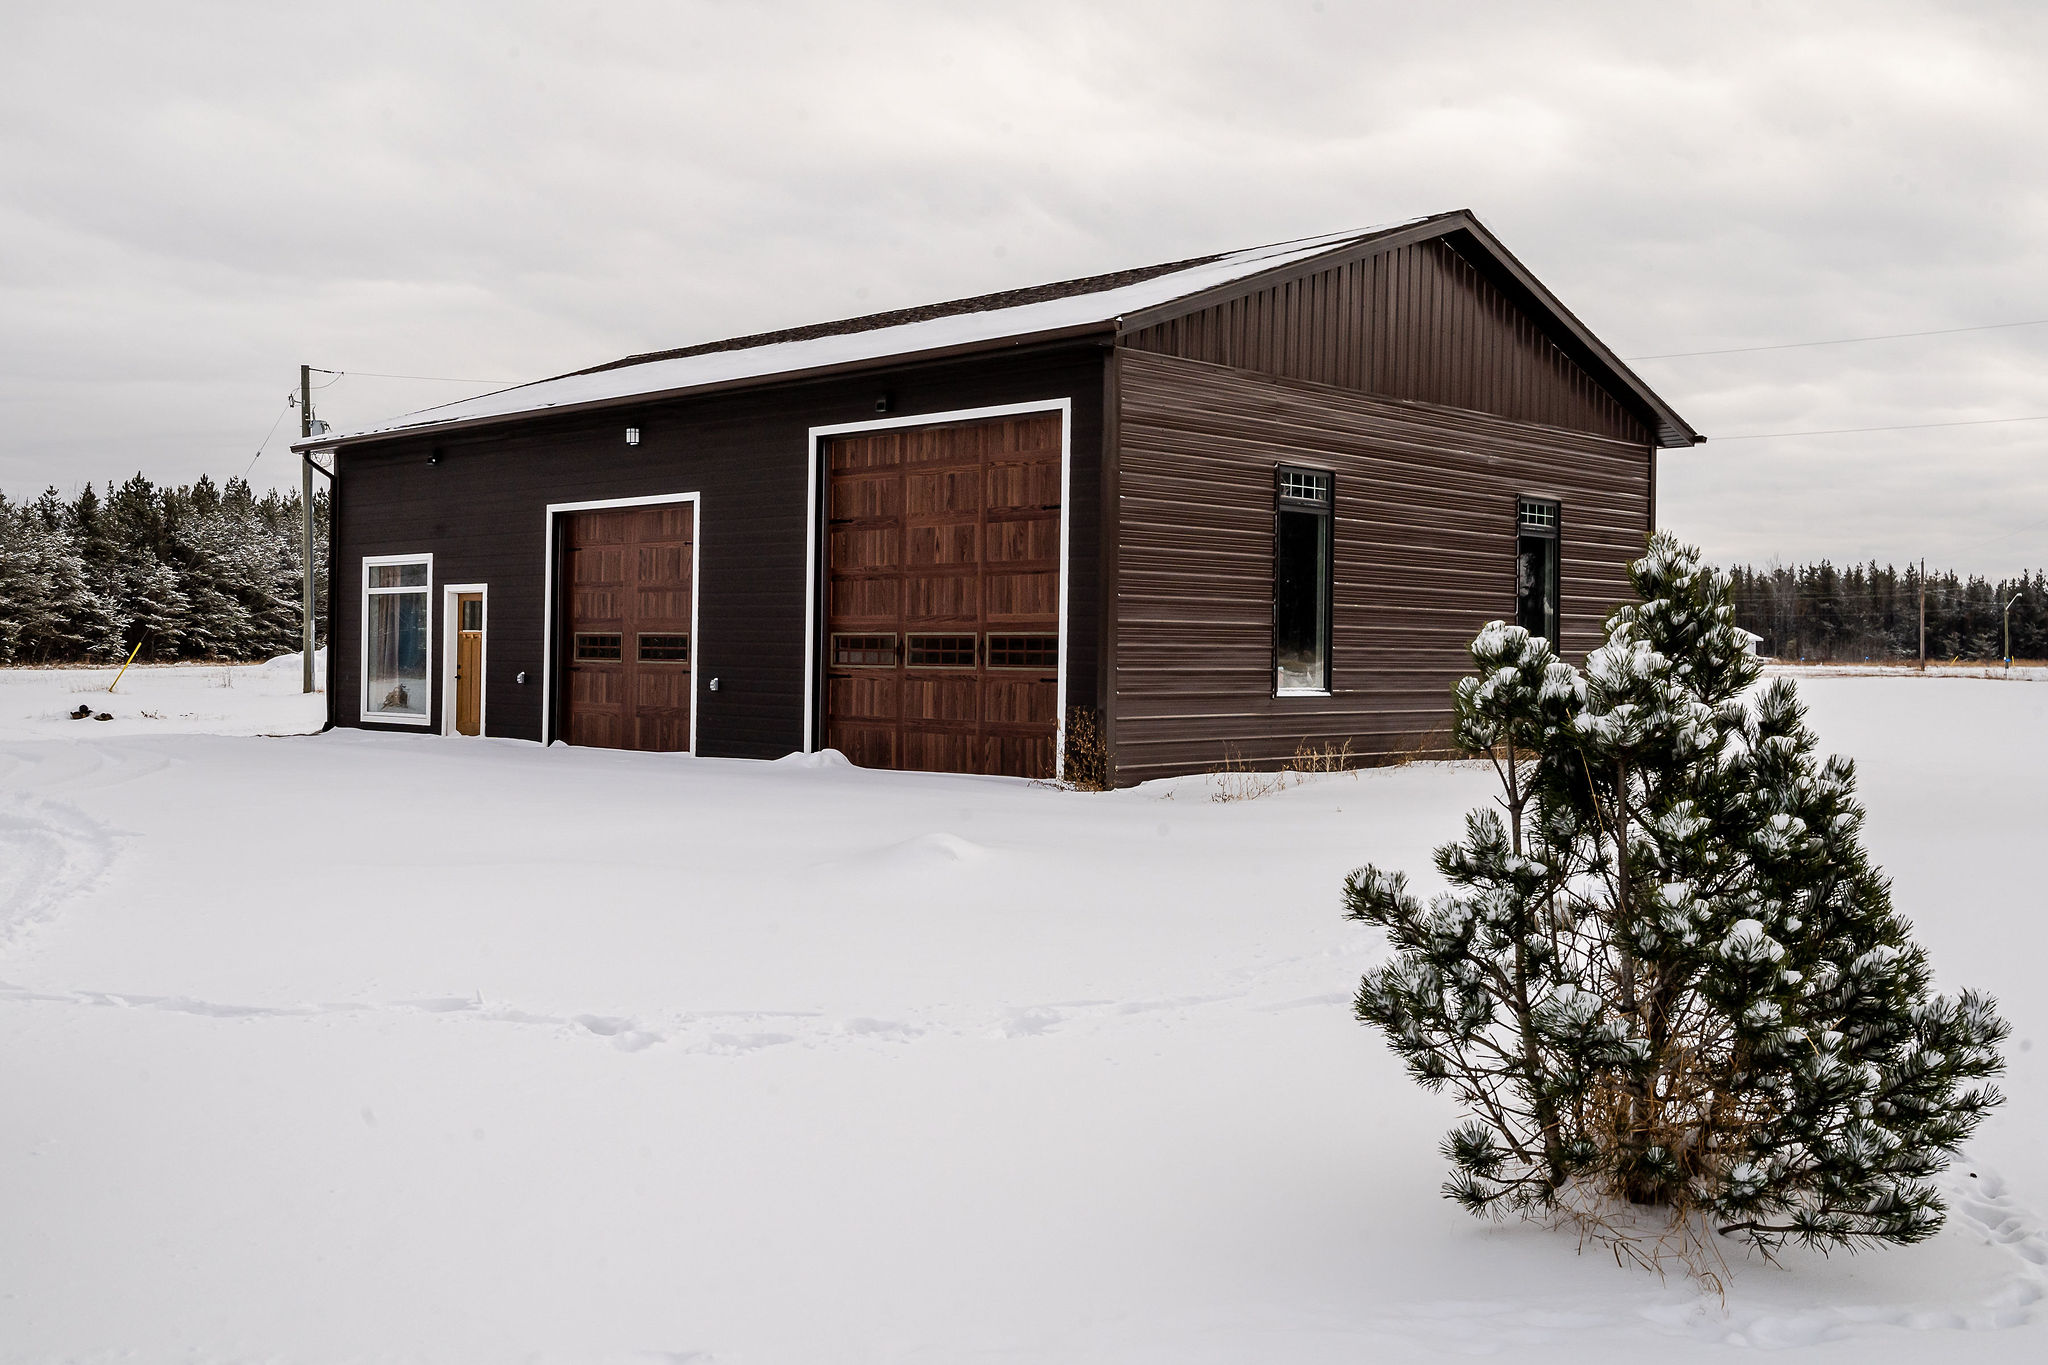 50'x35' Heated Garage/Shop